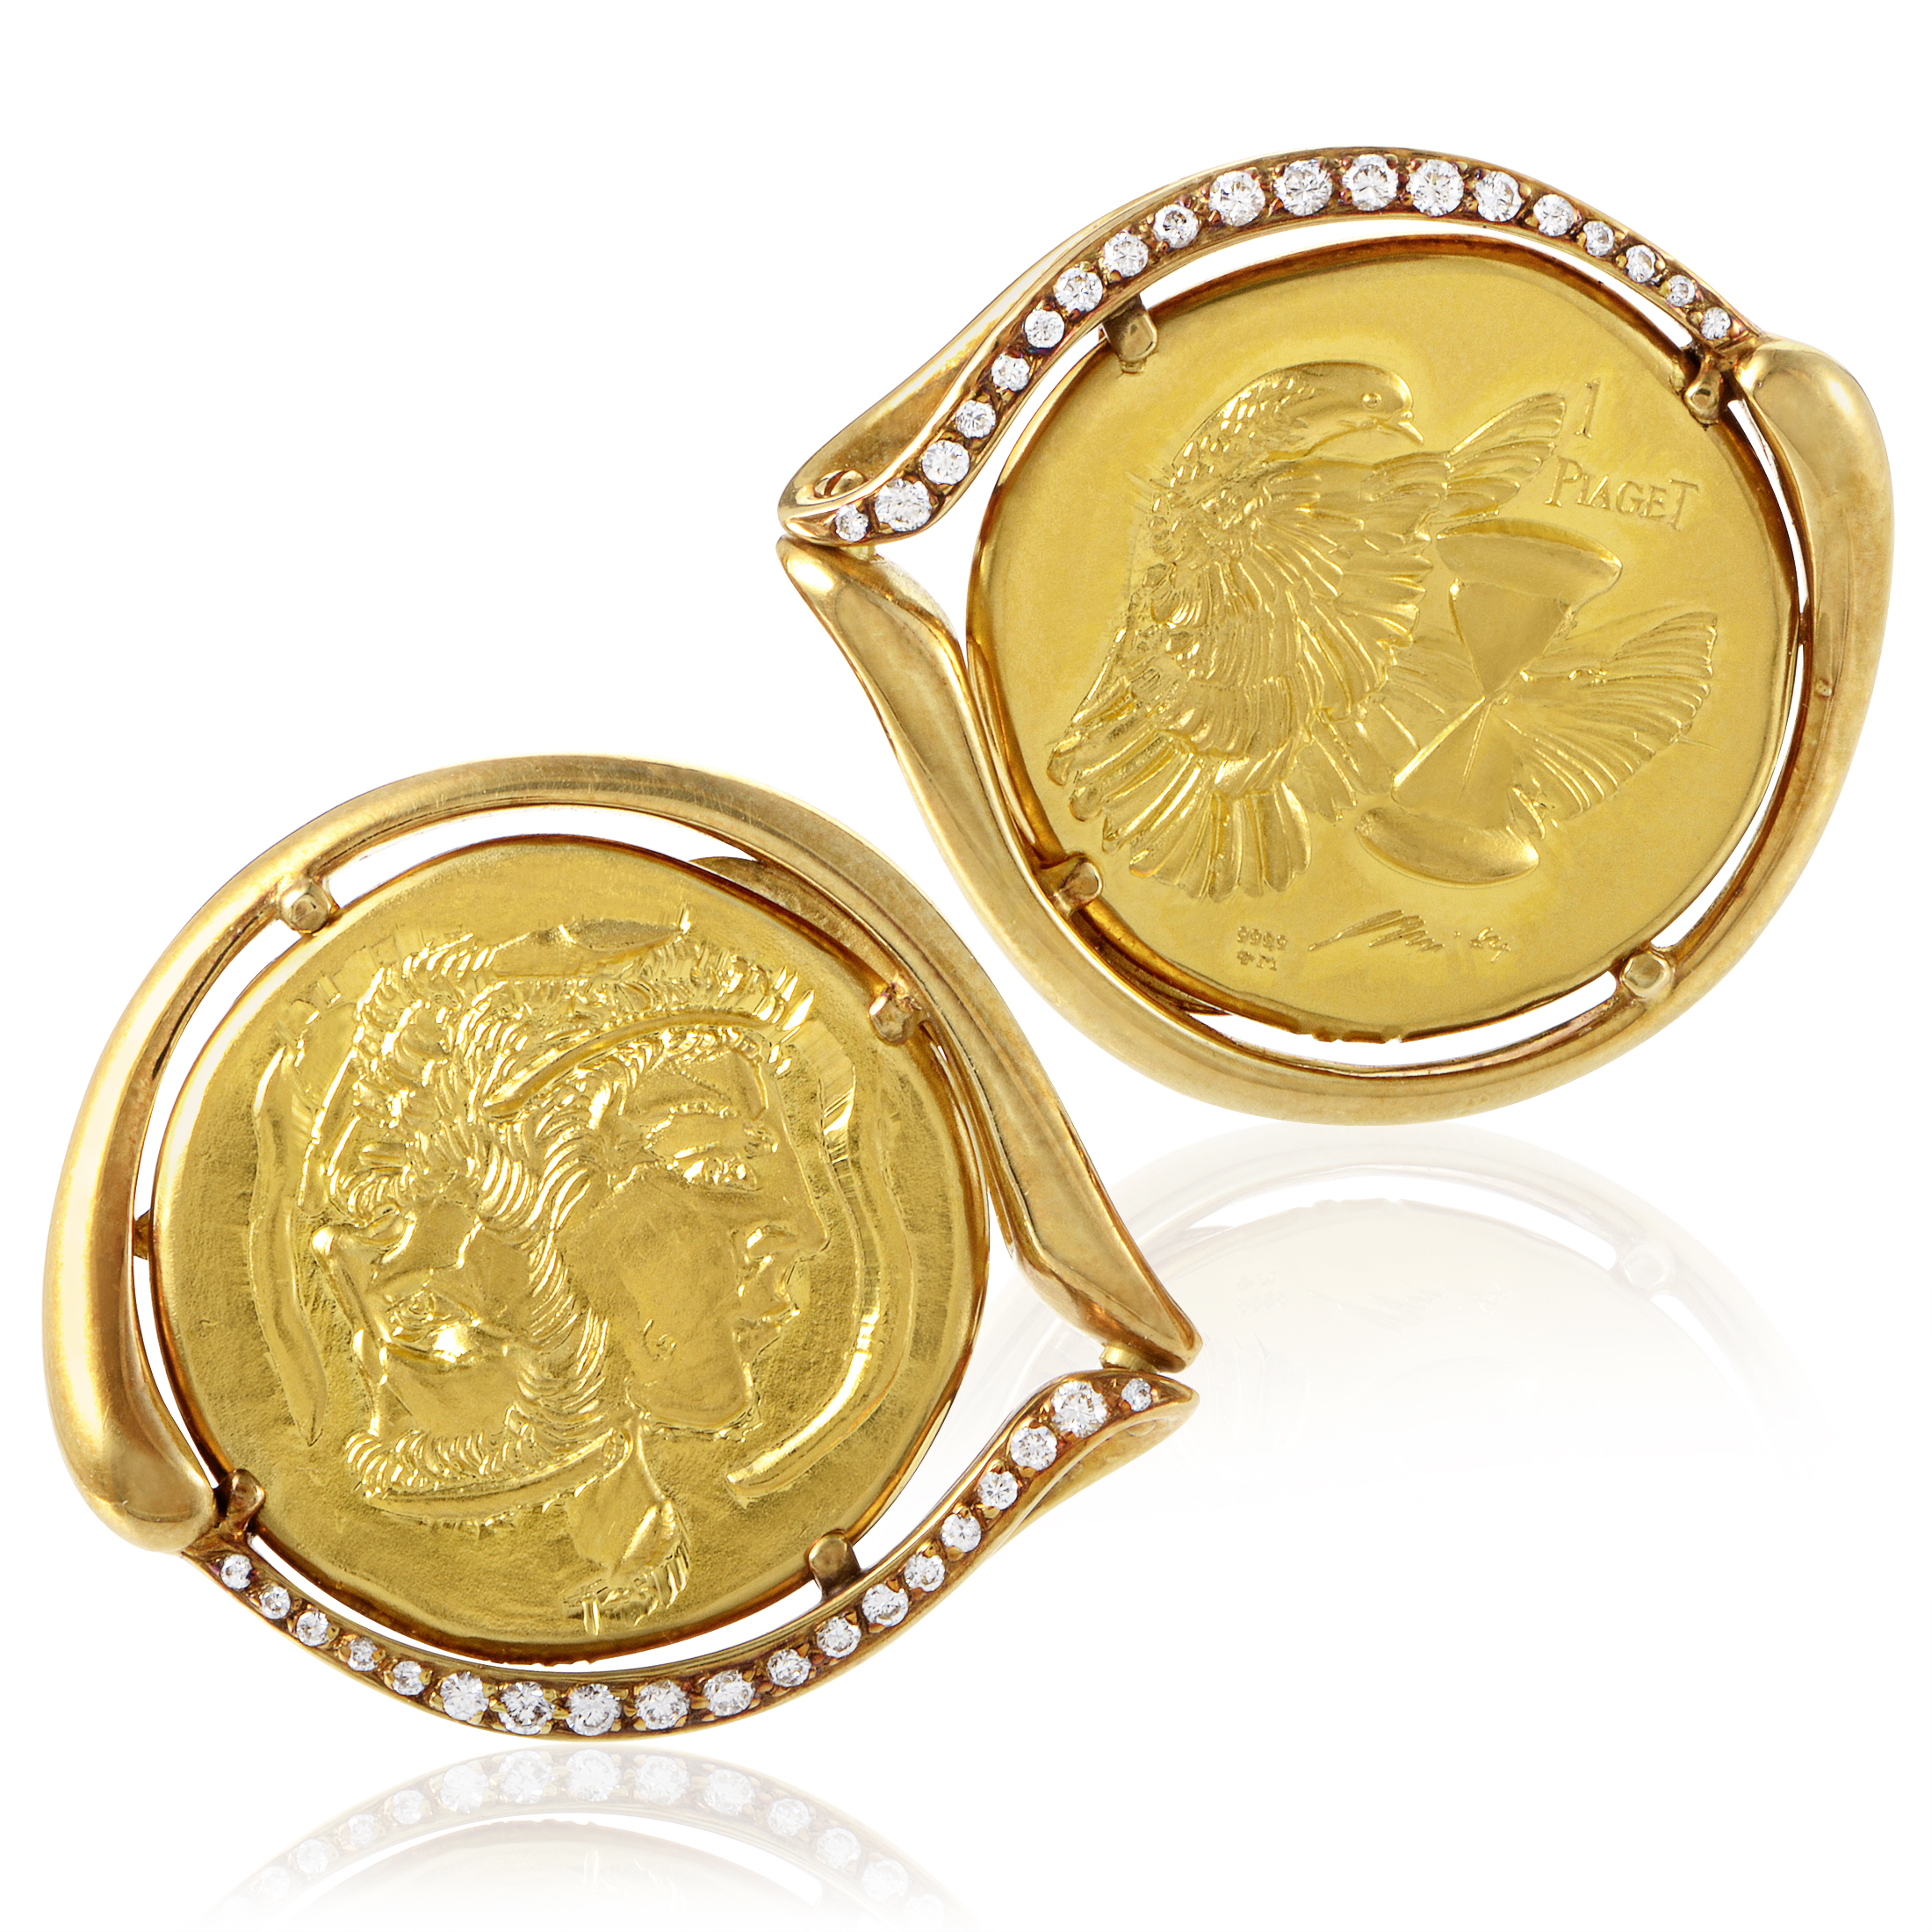 Piaget Men's 18K & 22K Yellow Gold Diamond Coin Cufflinks